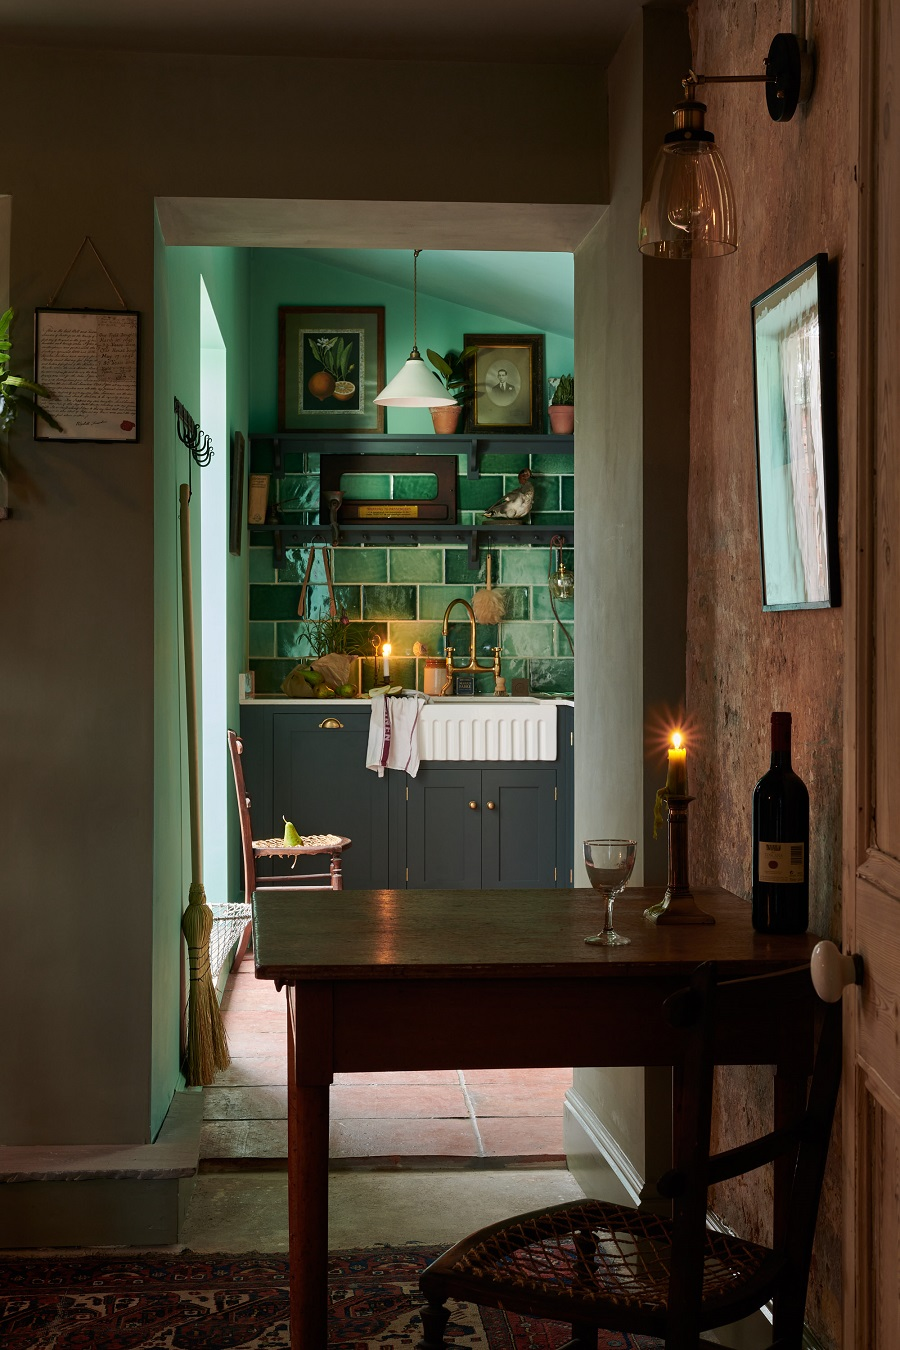 A Simple Country Kitchen in a Farmworker's Cottage